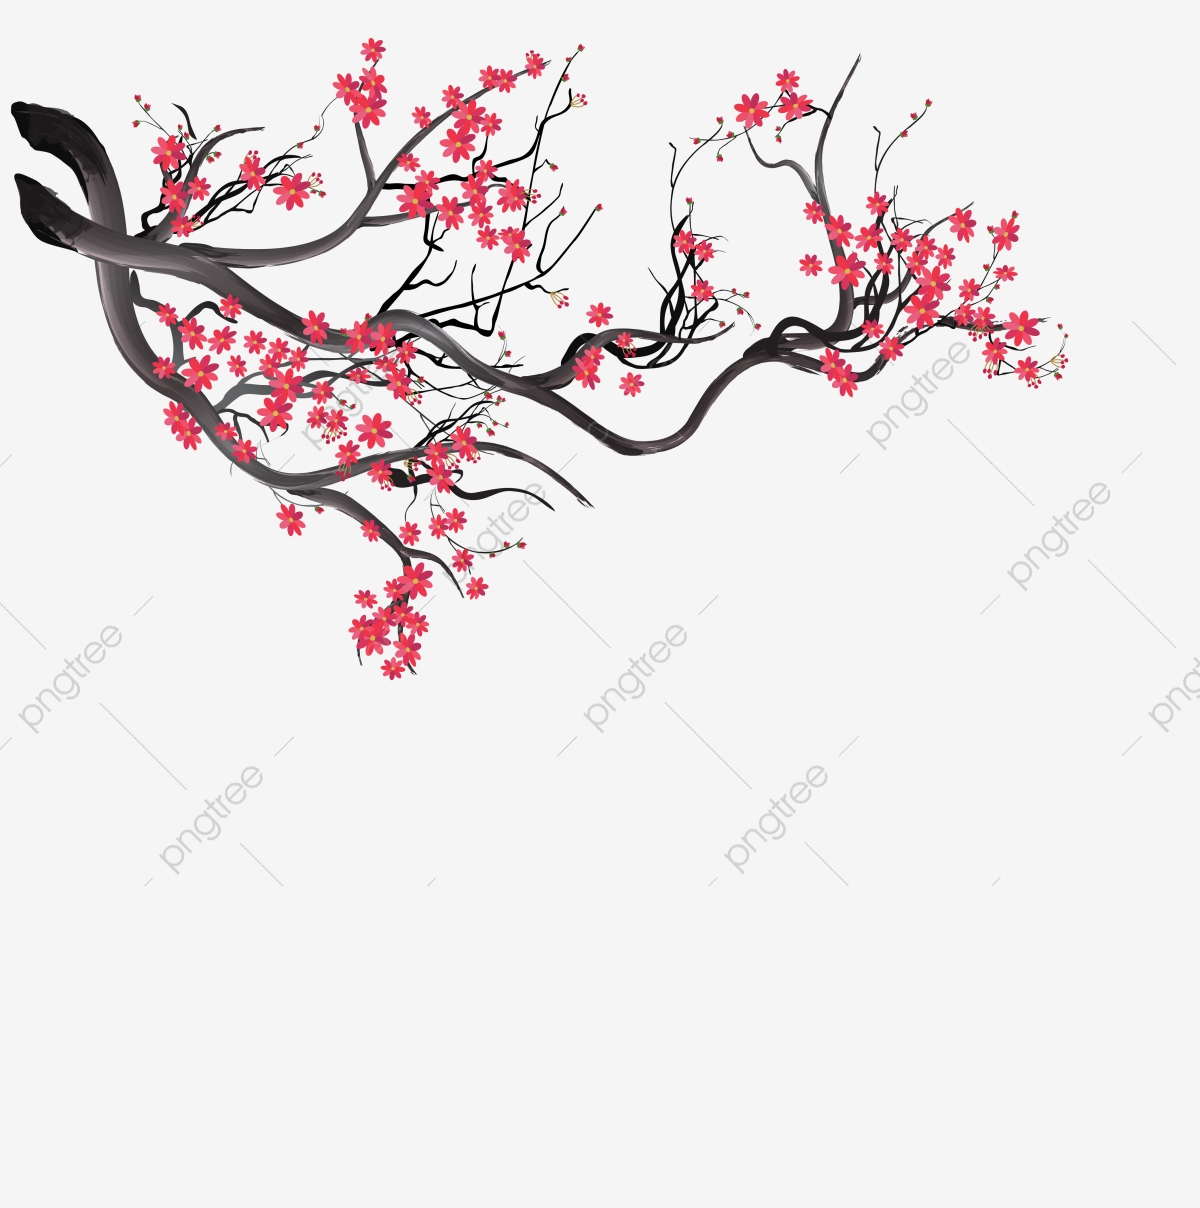 Watercolor Sakura Background With Blossom Cherry Branches Hand